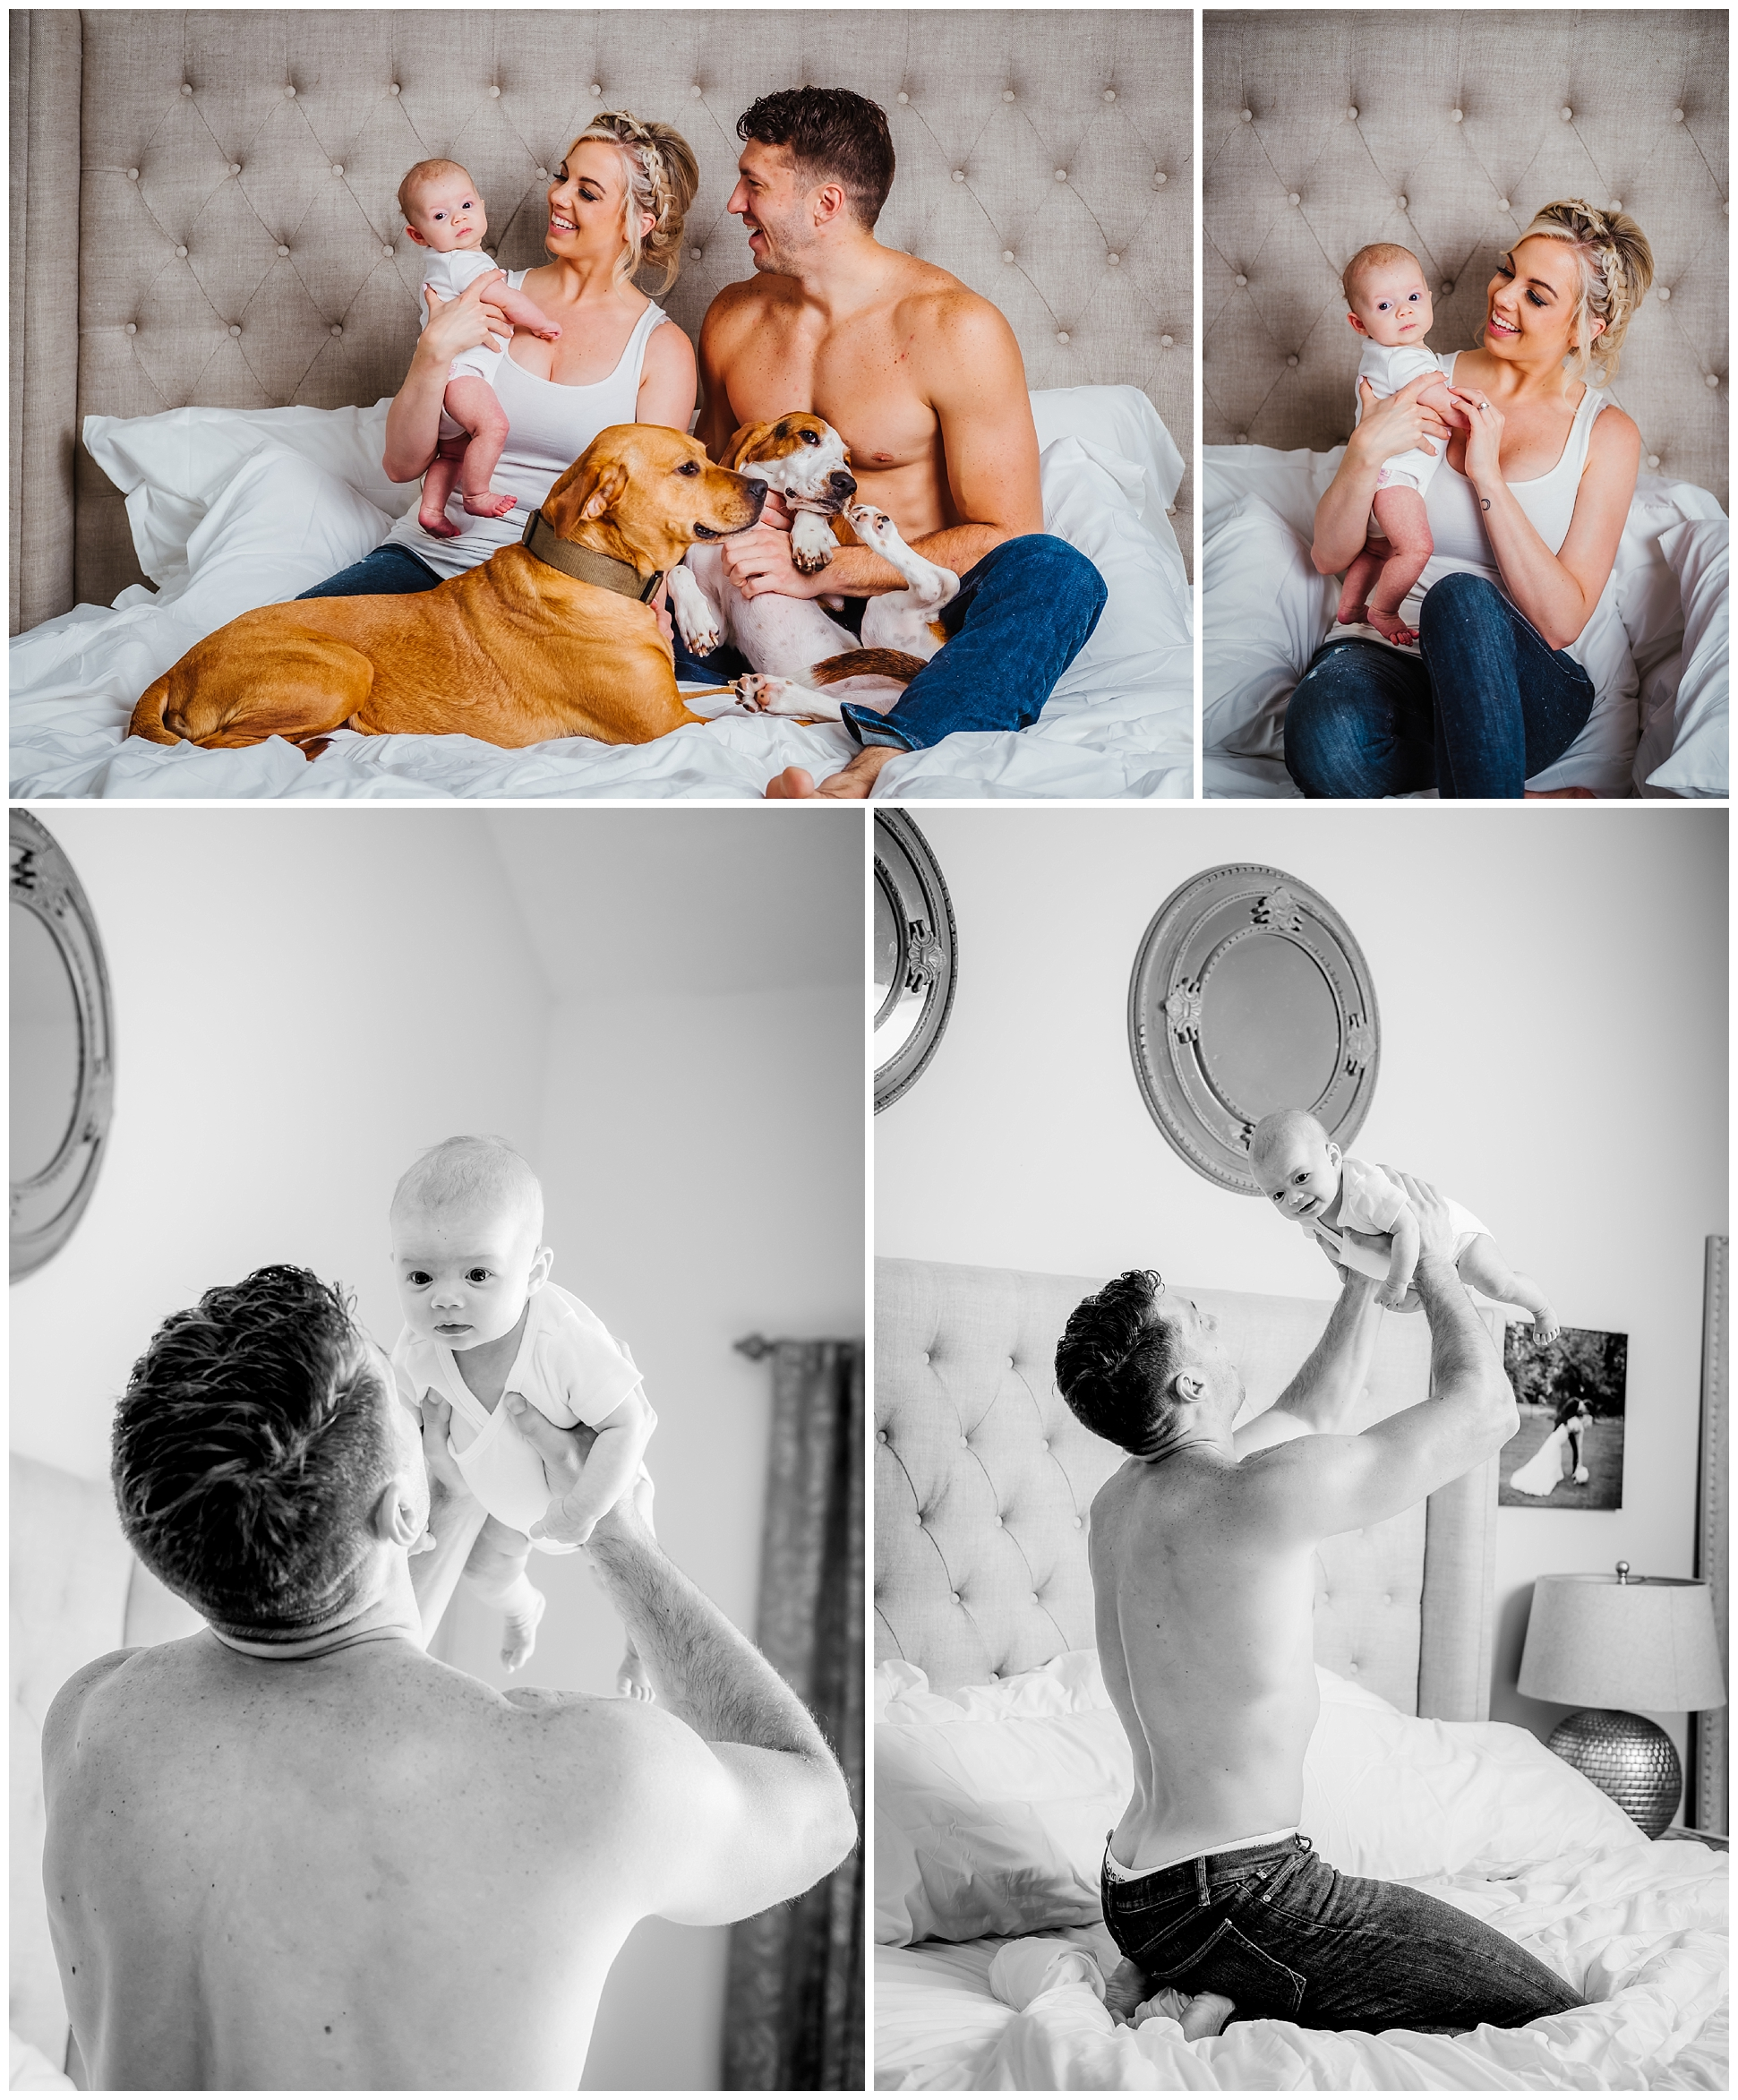 in-home-lifestyle-baby-portratis-tampa-photographer-beachbody_0172.jpg